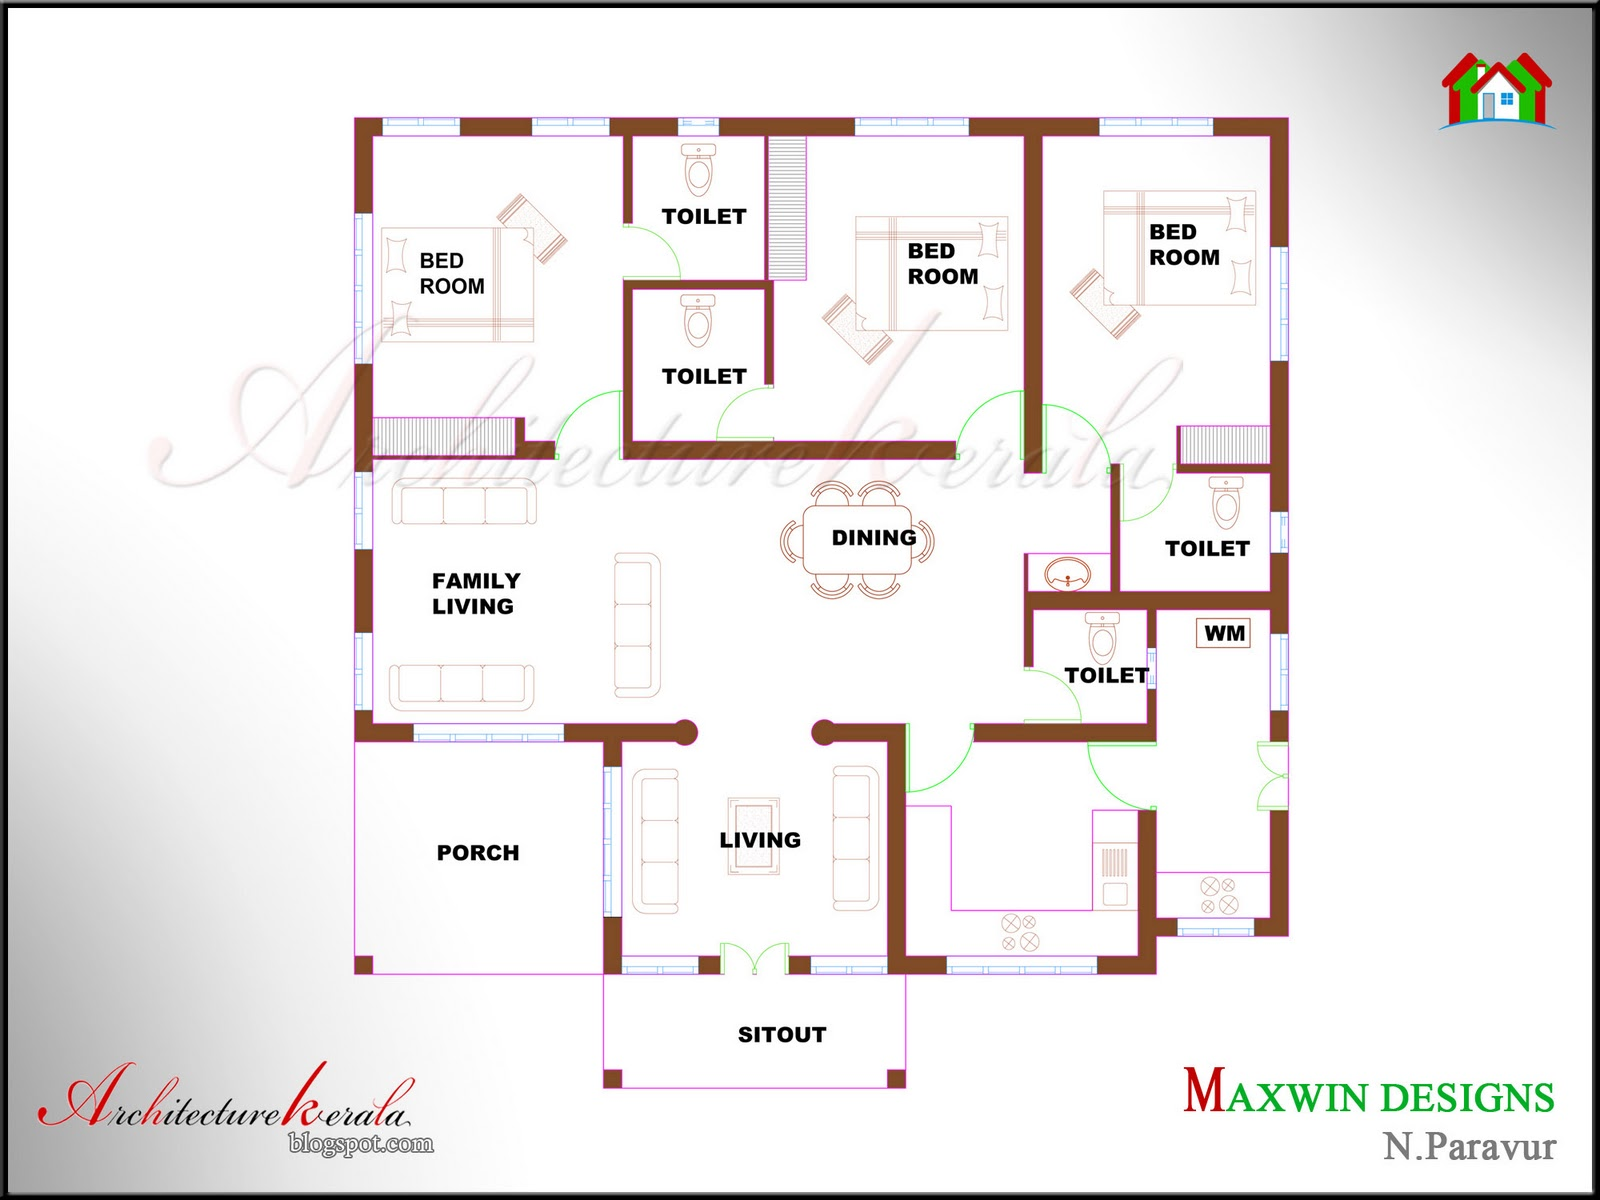 Two Bedroom House Plans Kerala Style Cbru. 2 Bedroom House Plans Kerala Style   Bedroom Style Ideas